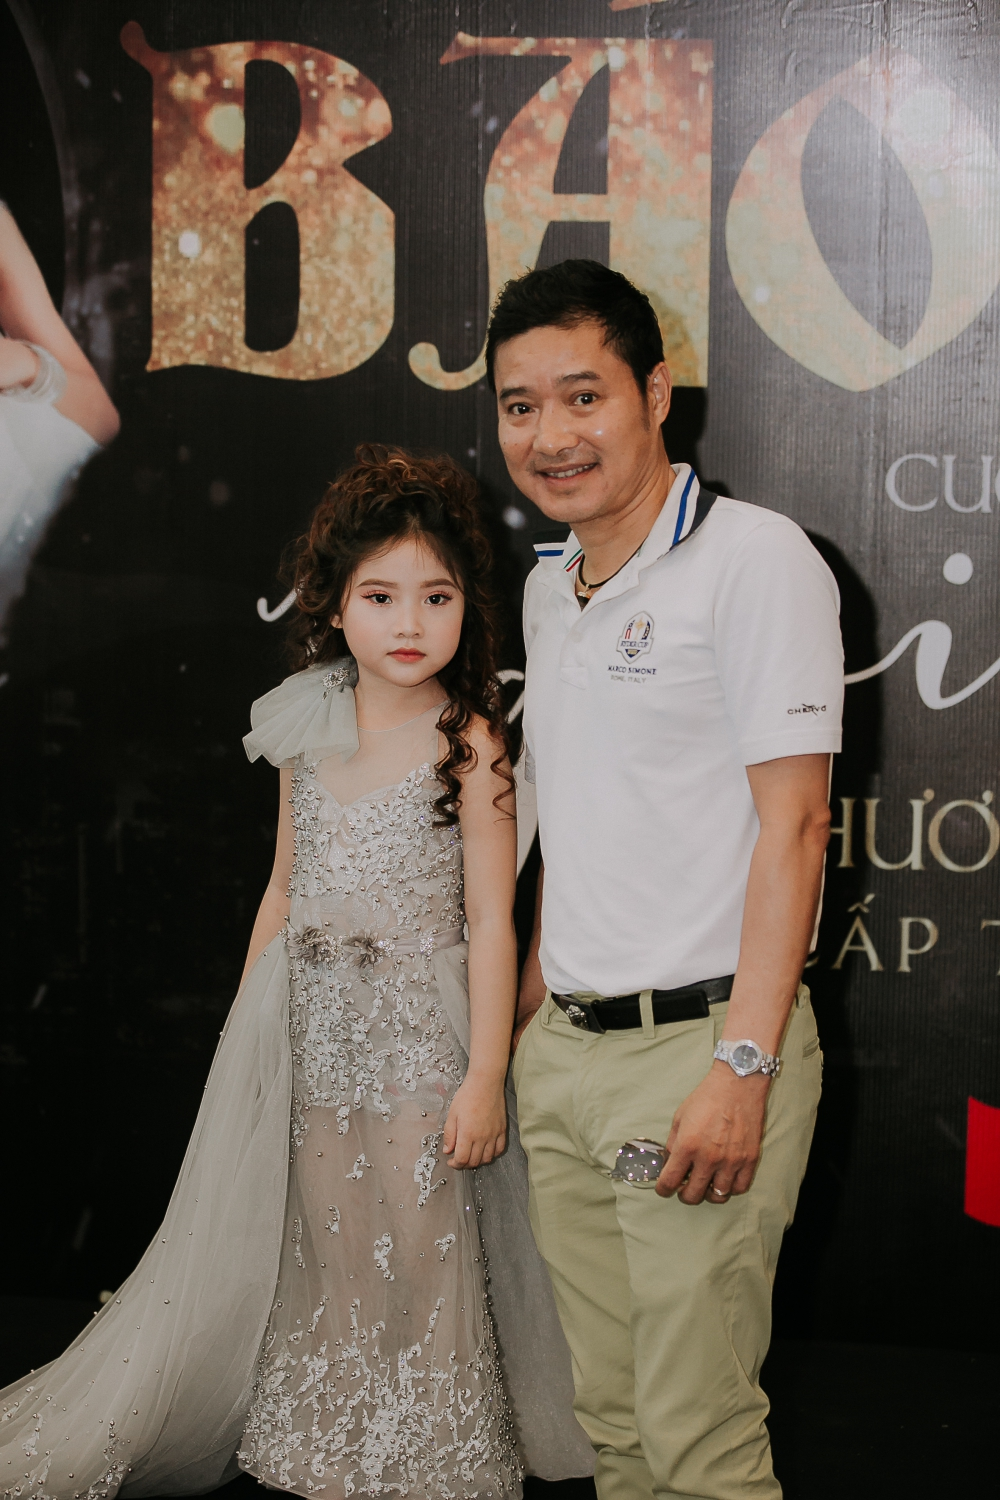 Khanh Van will participate in a beauty contest for children in 2019.